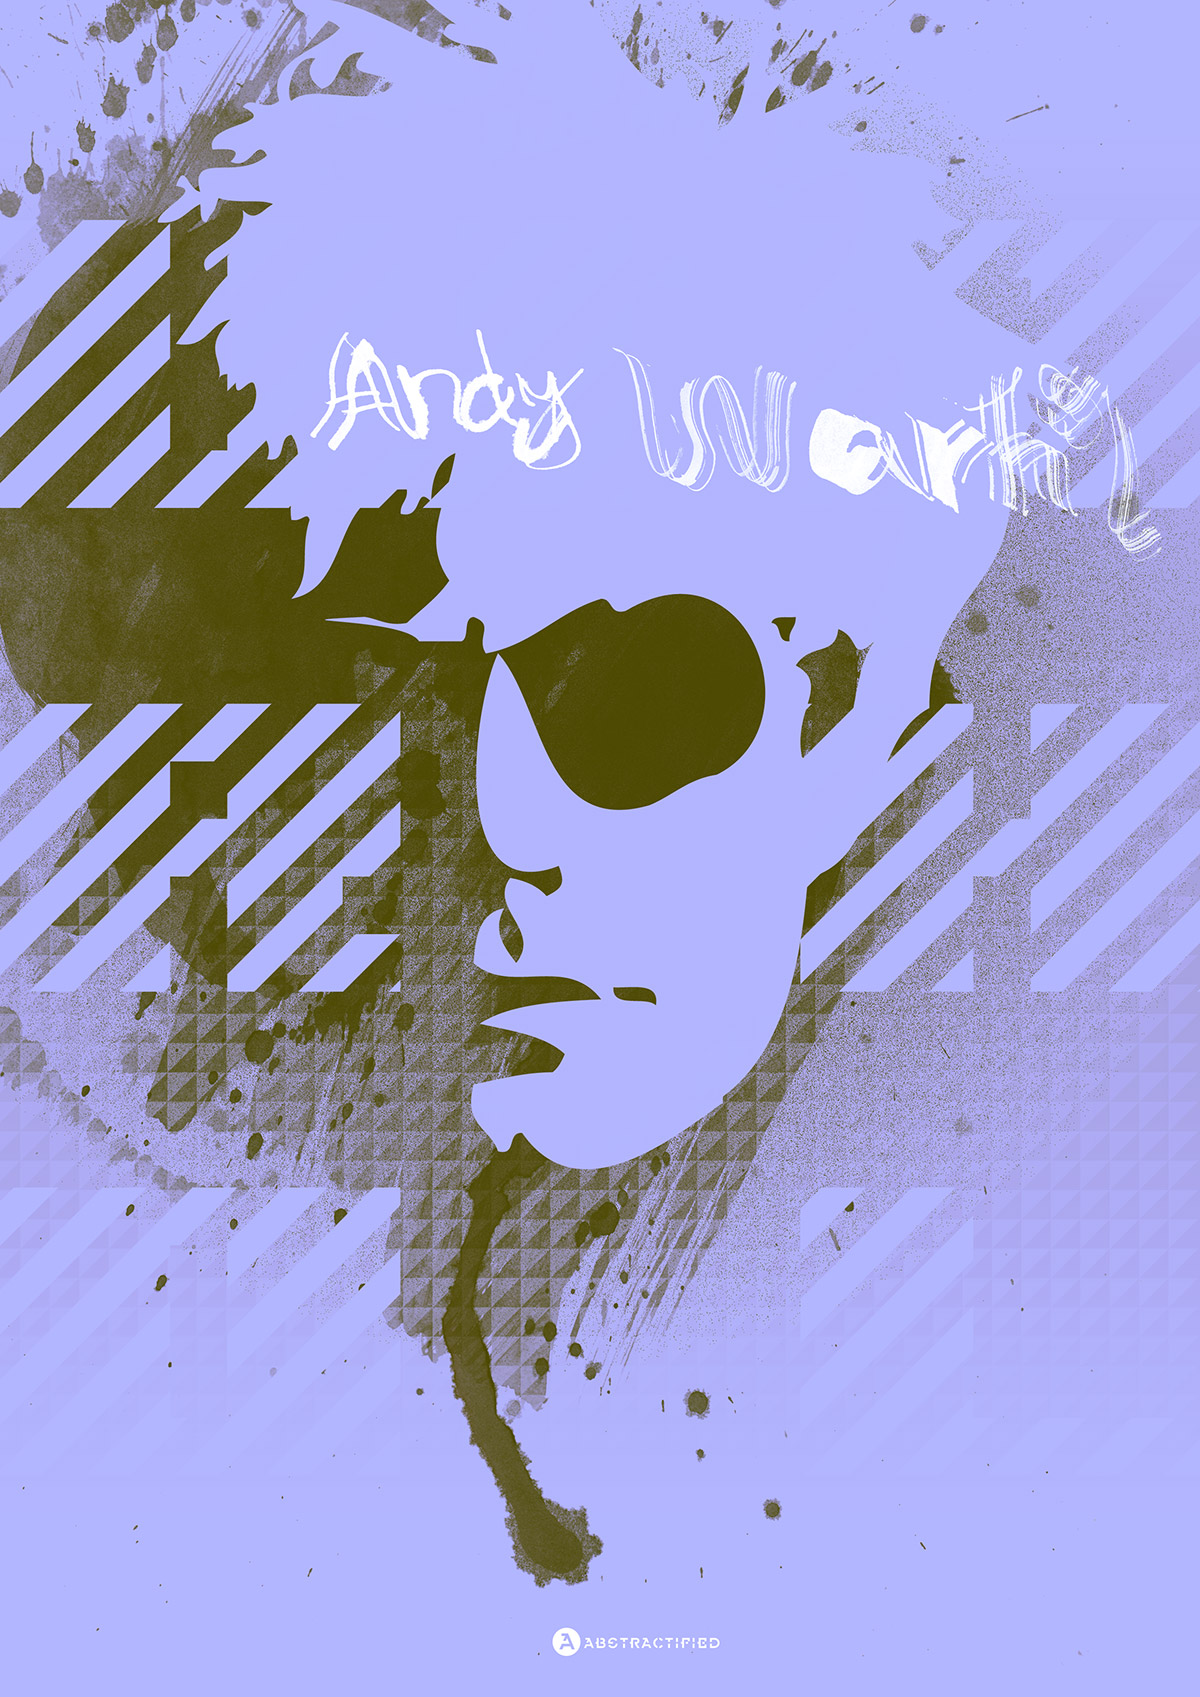 Abstractified Andy Warhol